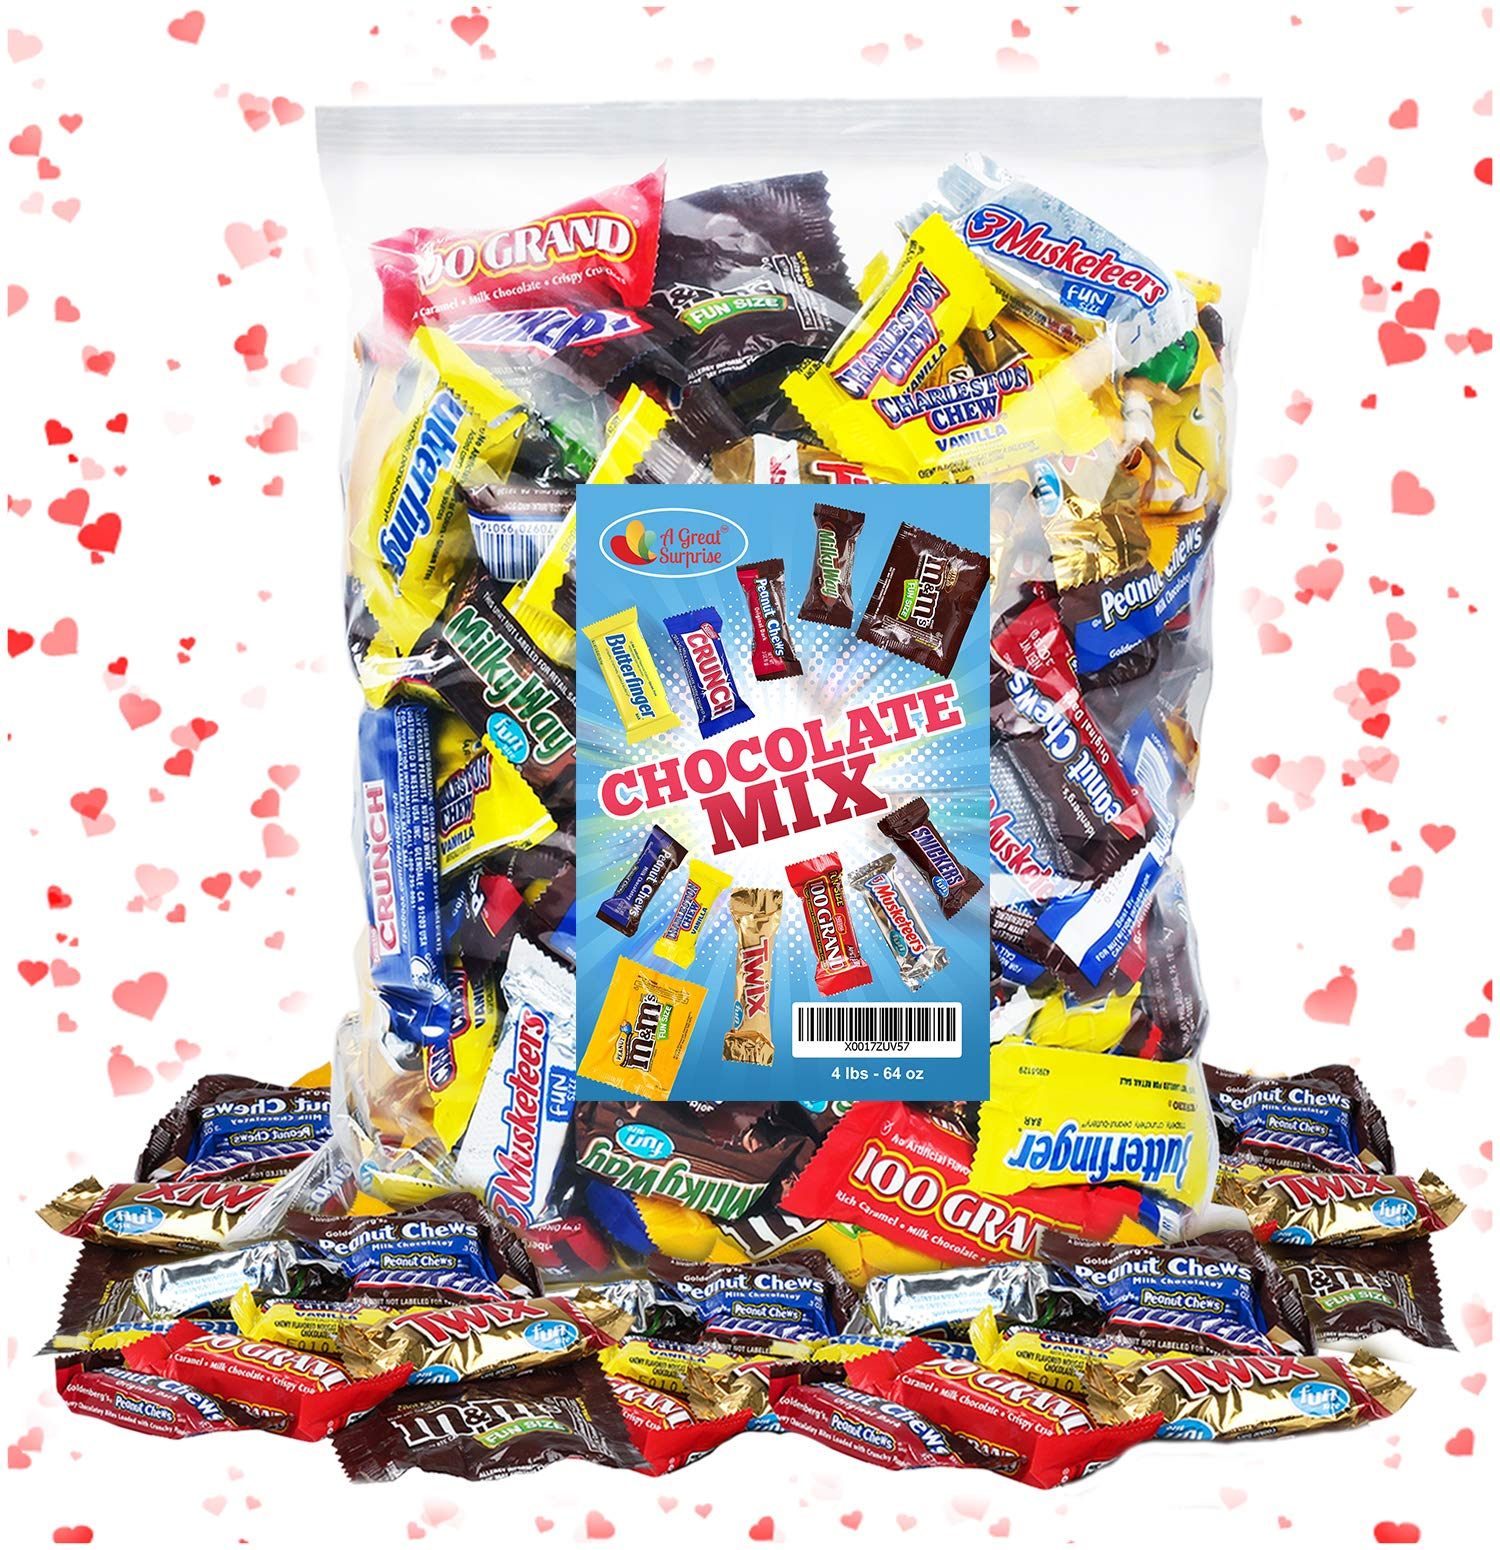 CDM product Chocolate Variety Pack Fun Size Mix - Holiday Chocolate Mix - All Your Favorite Chocolate Bars, 4 LB Bulk Candy big image